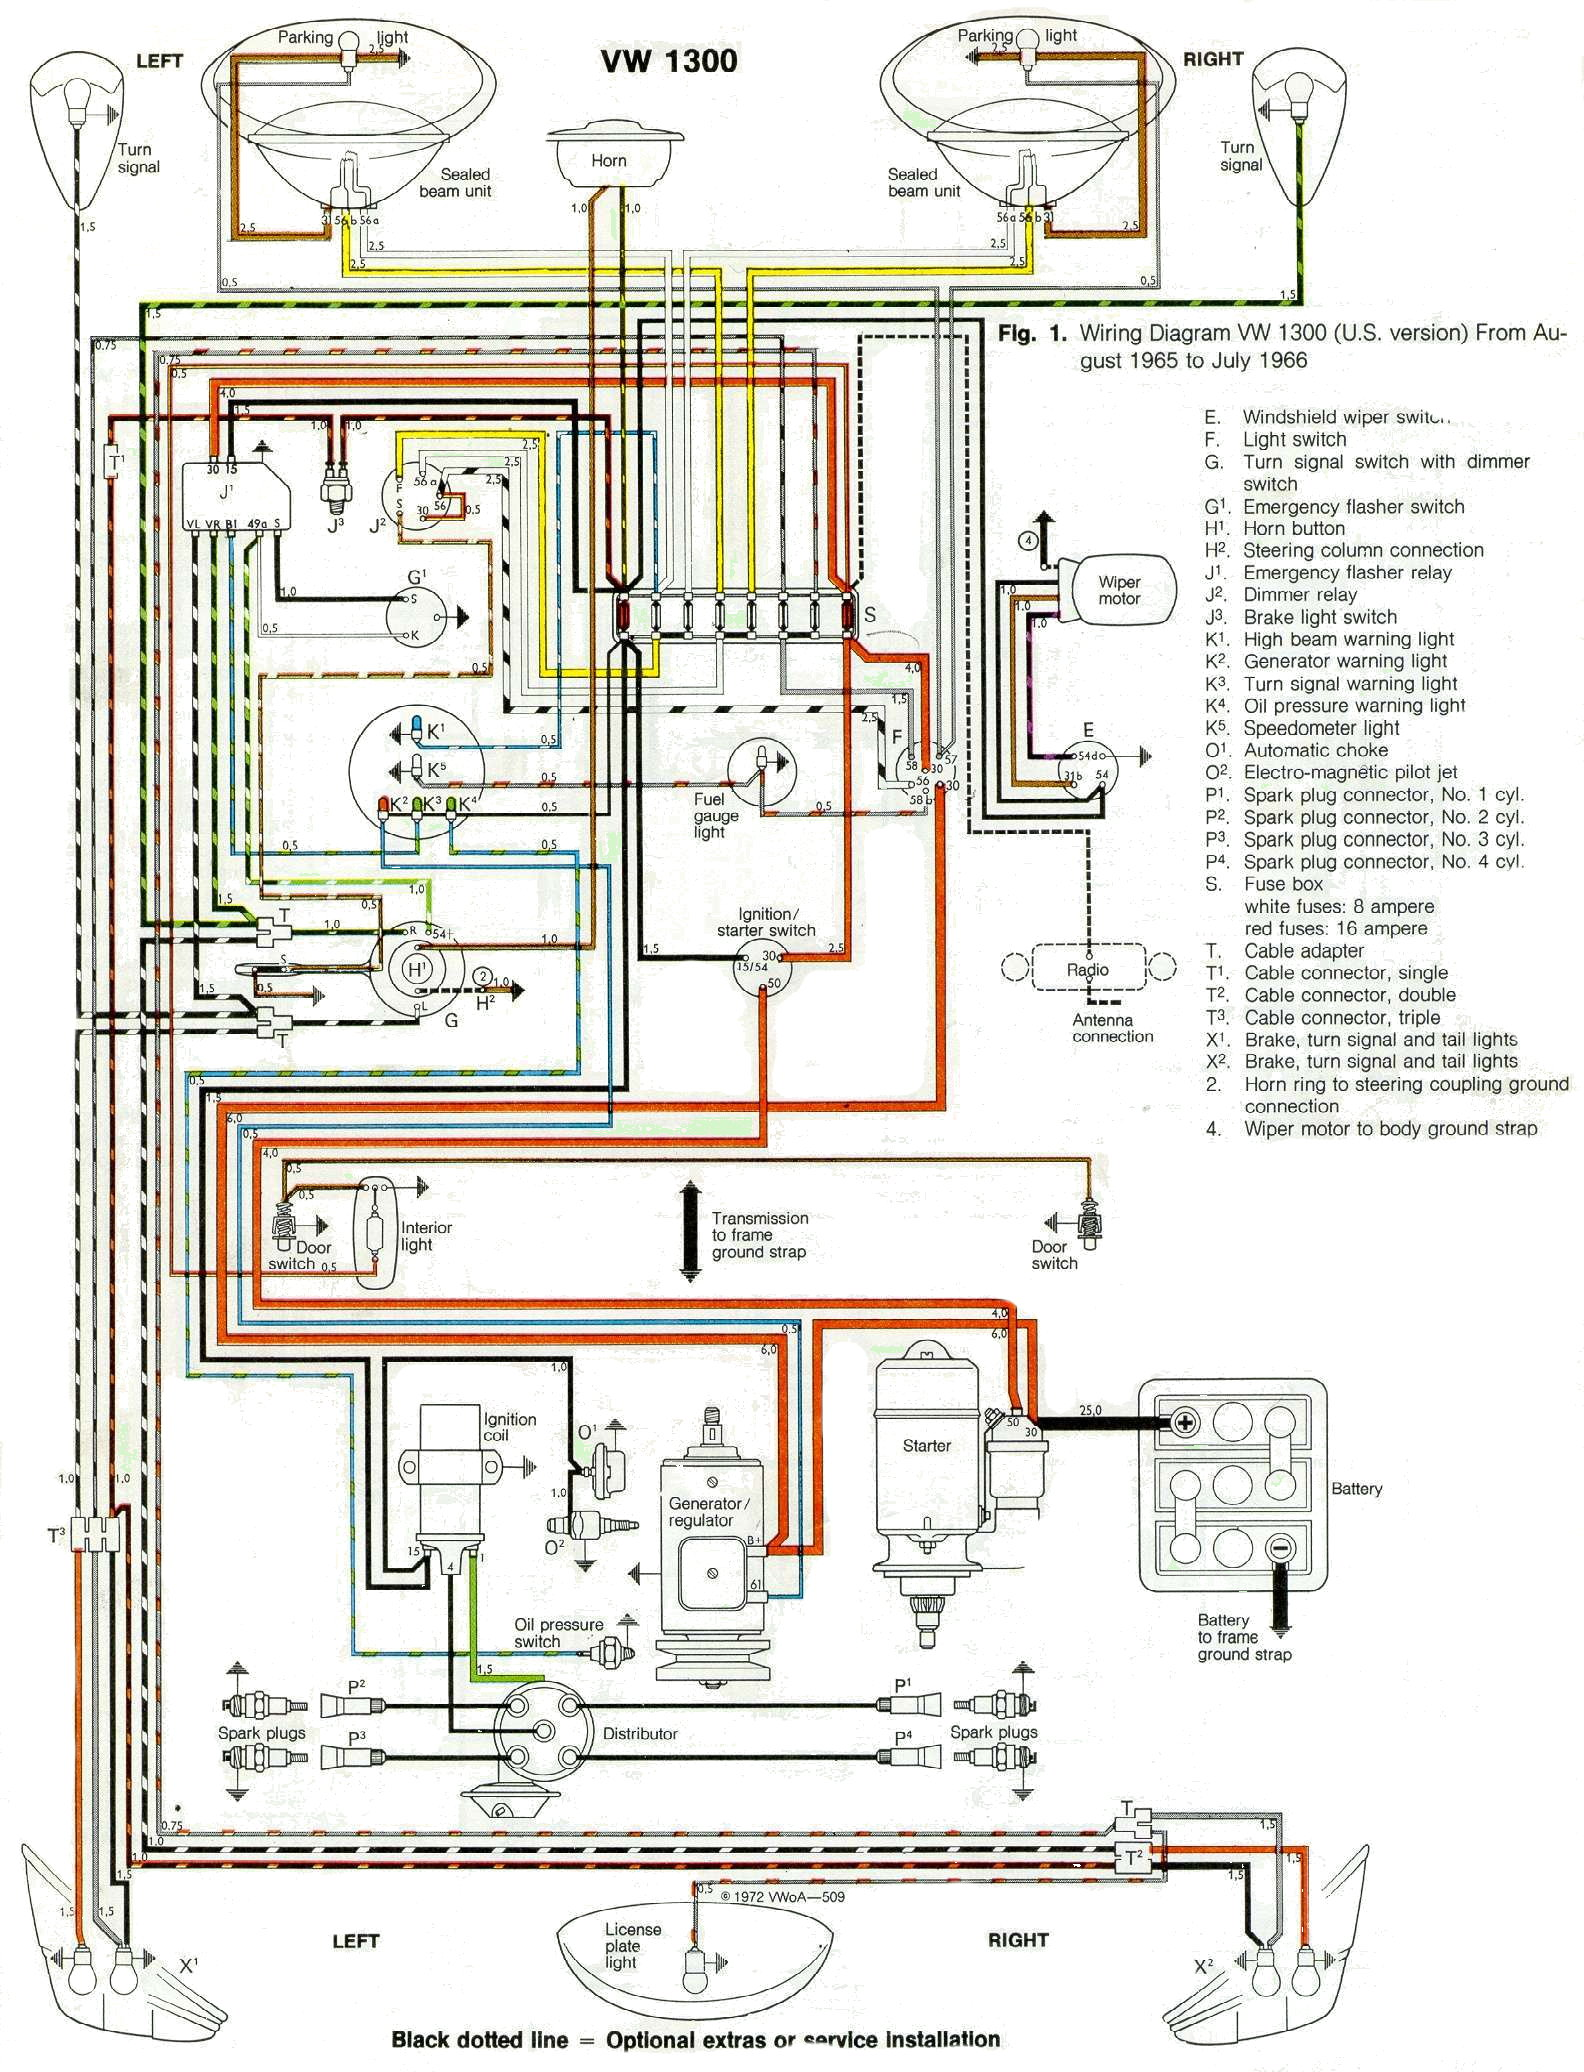 1966 Wiring 67 vw bus wiring harness 71 vw wiring harness \u2022 wiring diagrams Wiring Harness Diagram at mifinder.co